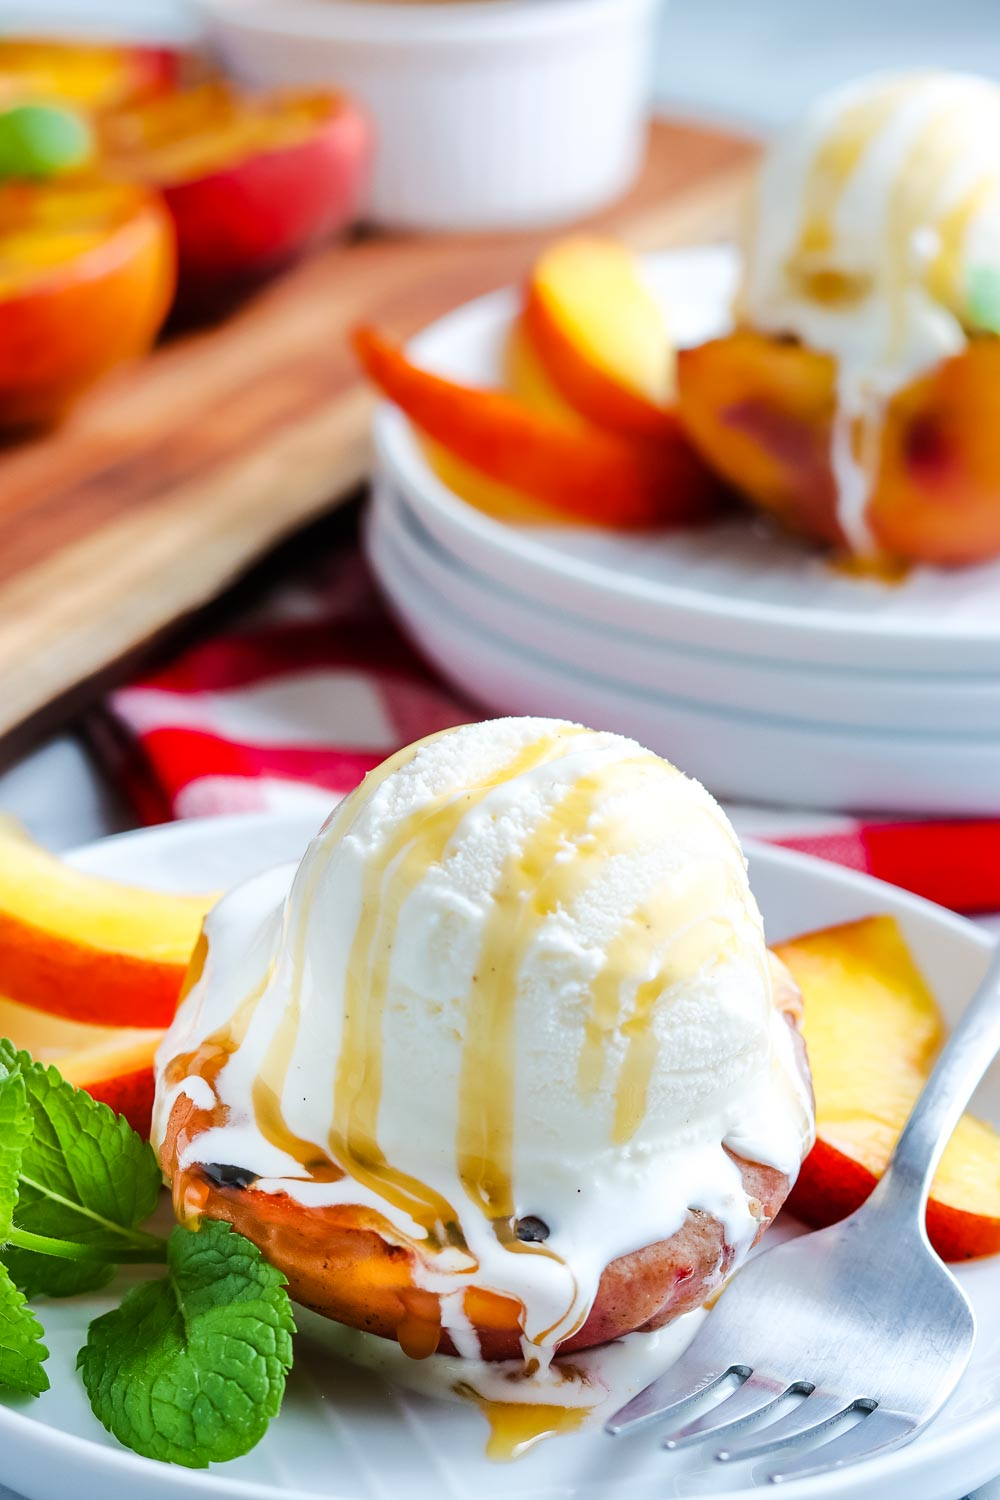 A grilled peach with a scoop of ice cream and caramel sauce.